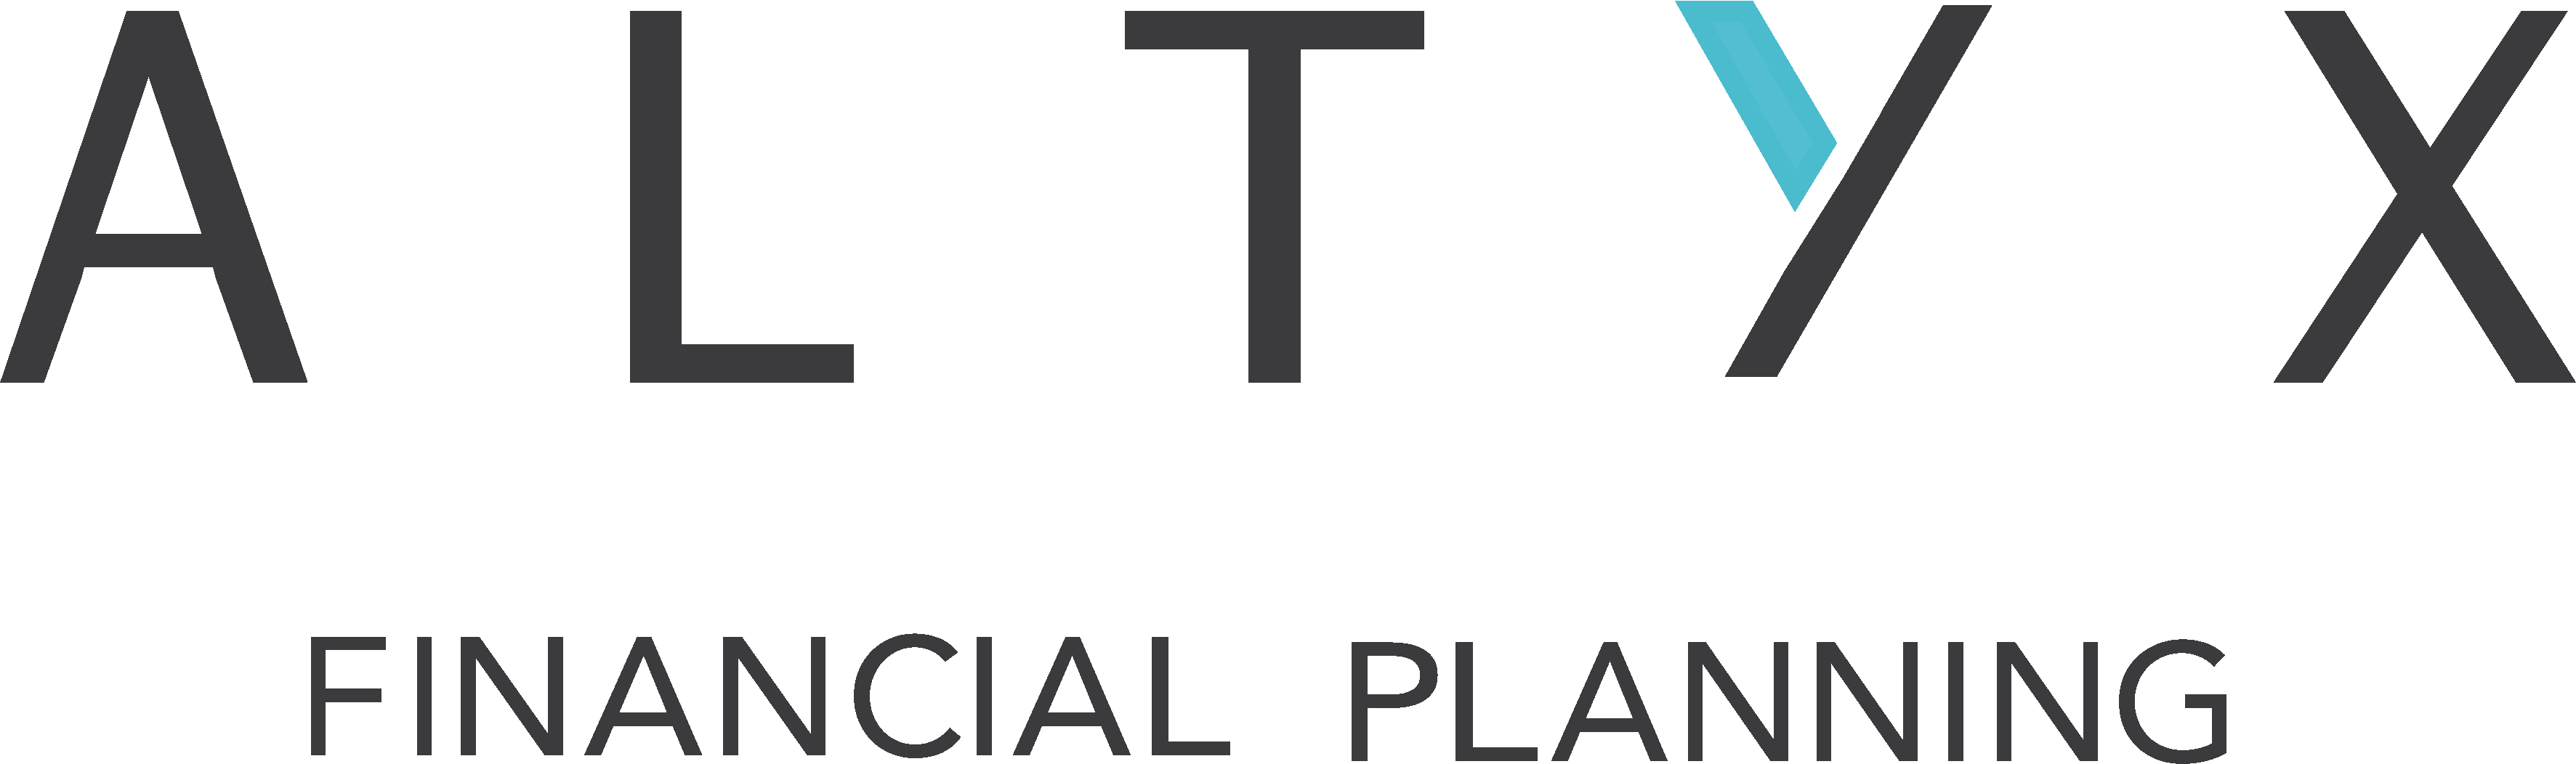 logo Altyx Financial Planning